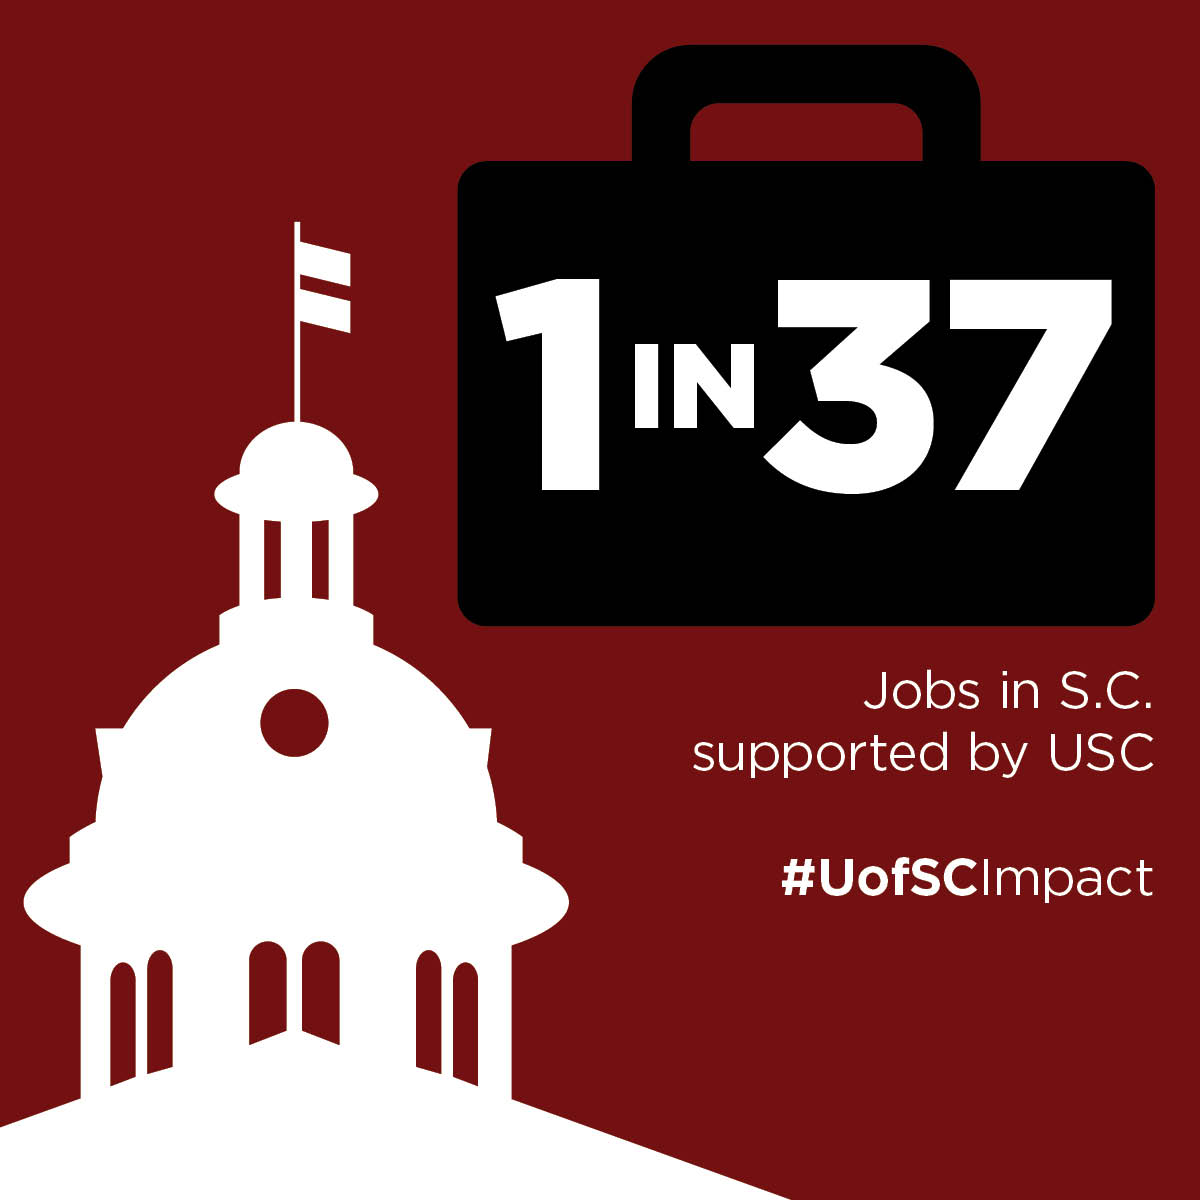 1 in 37 jobs in SC supported by USC